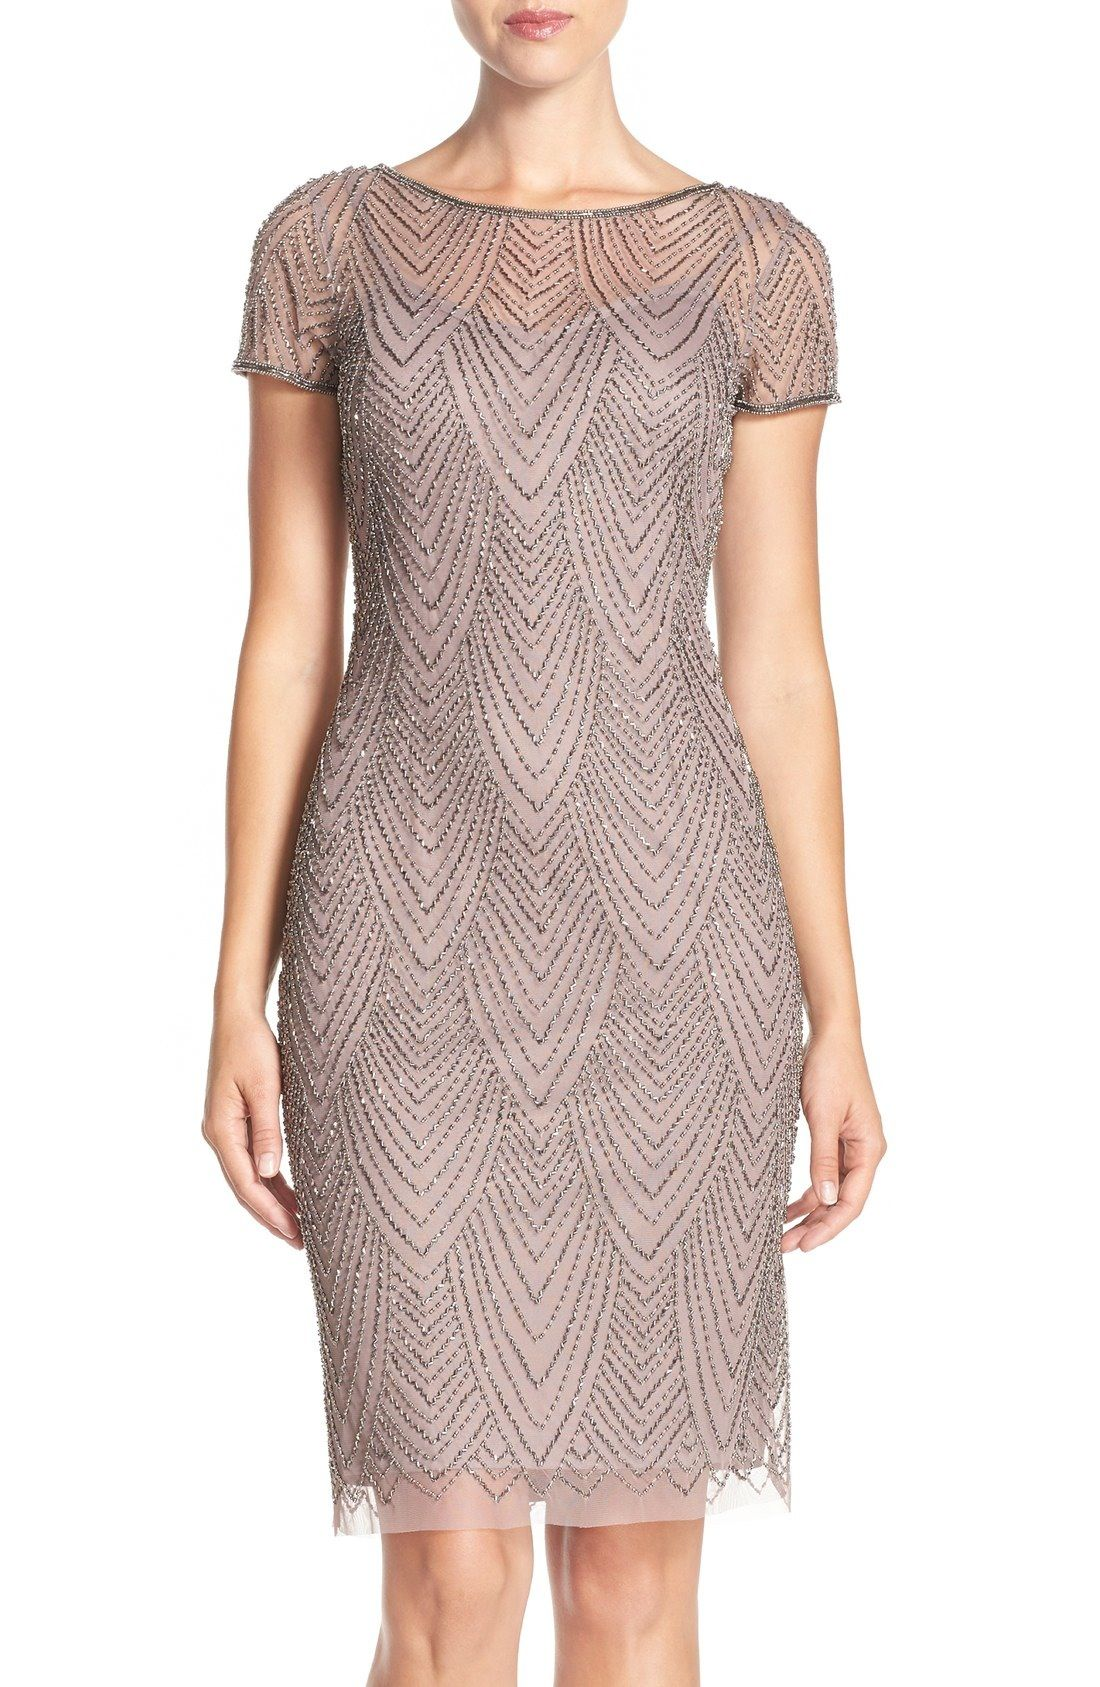 Sheath dresses for wedding guest  Adrianna Papell Beaded Mesh Sheath Dress available at Nordstrom